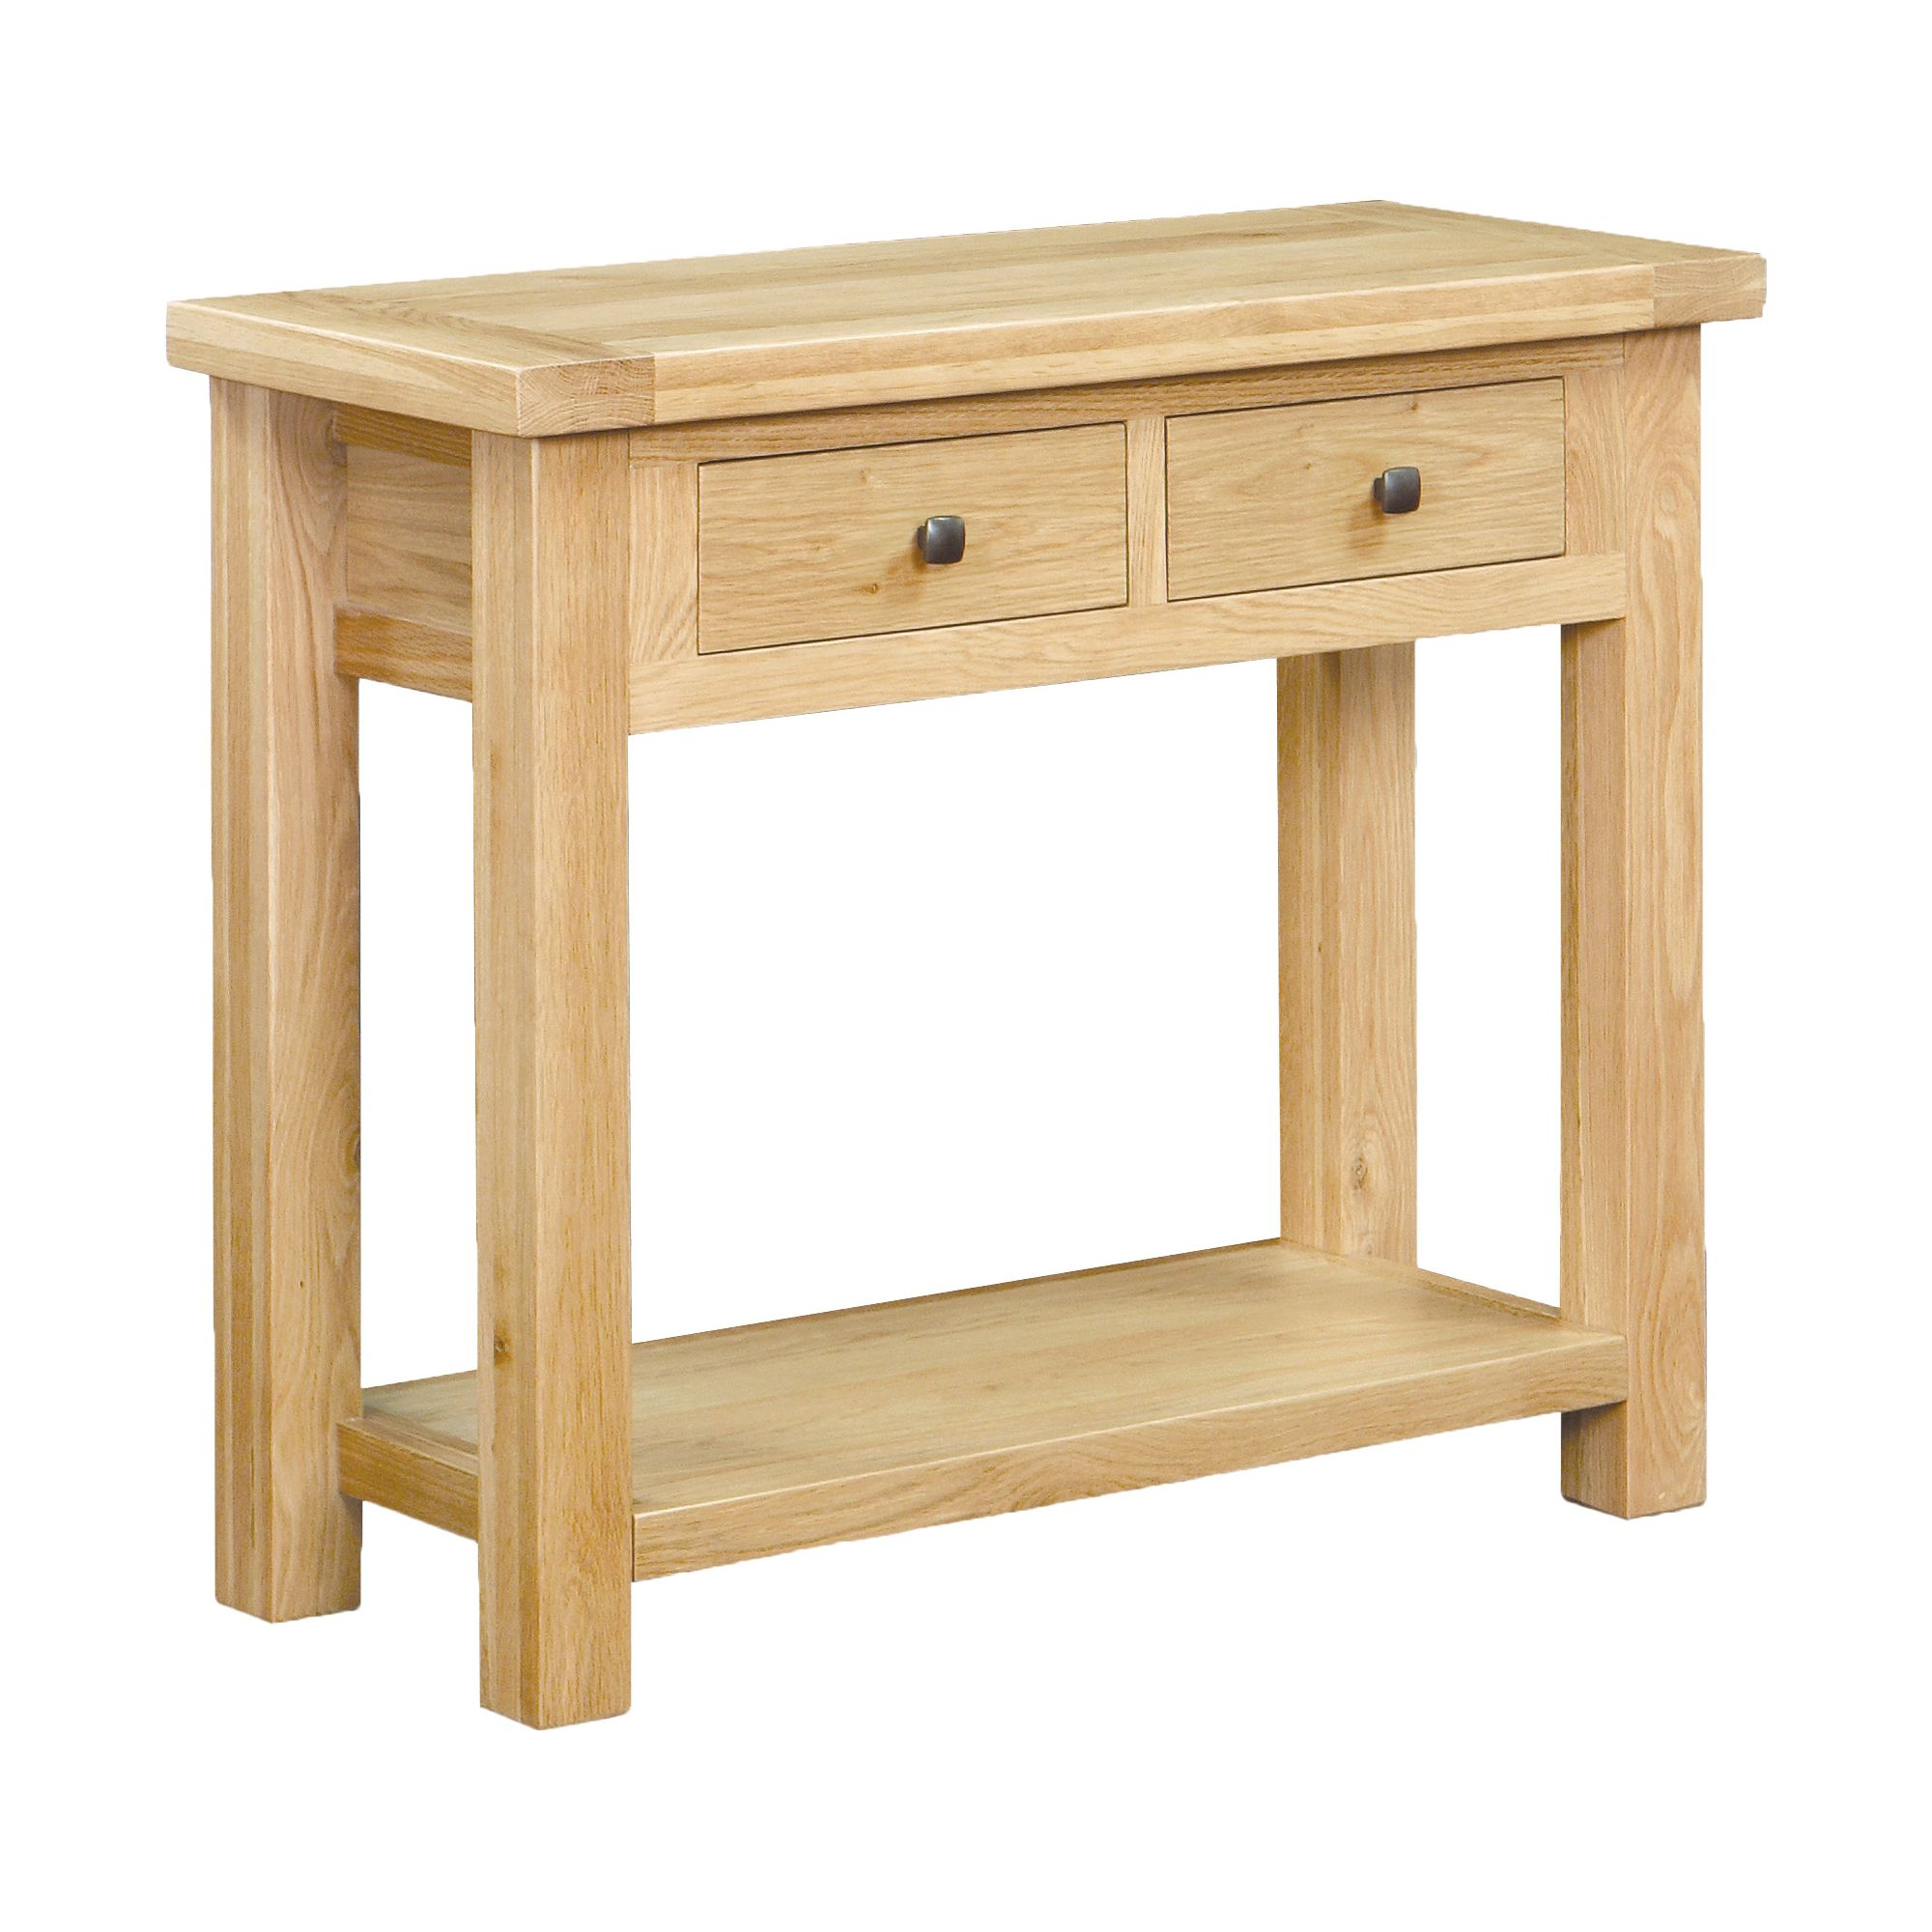 Alterton Furniture Chatsworth Console Table at Tesco Direct